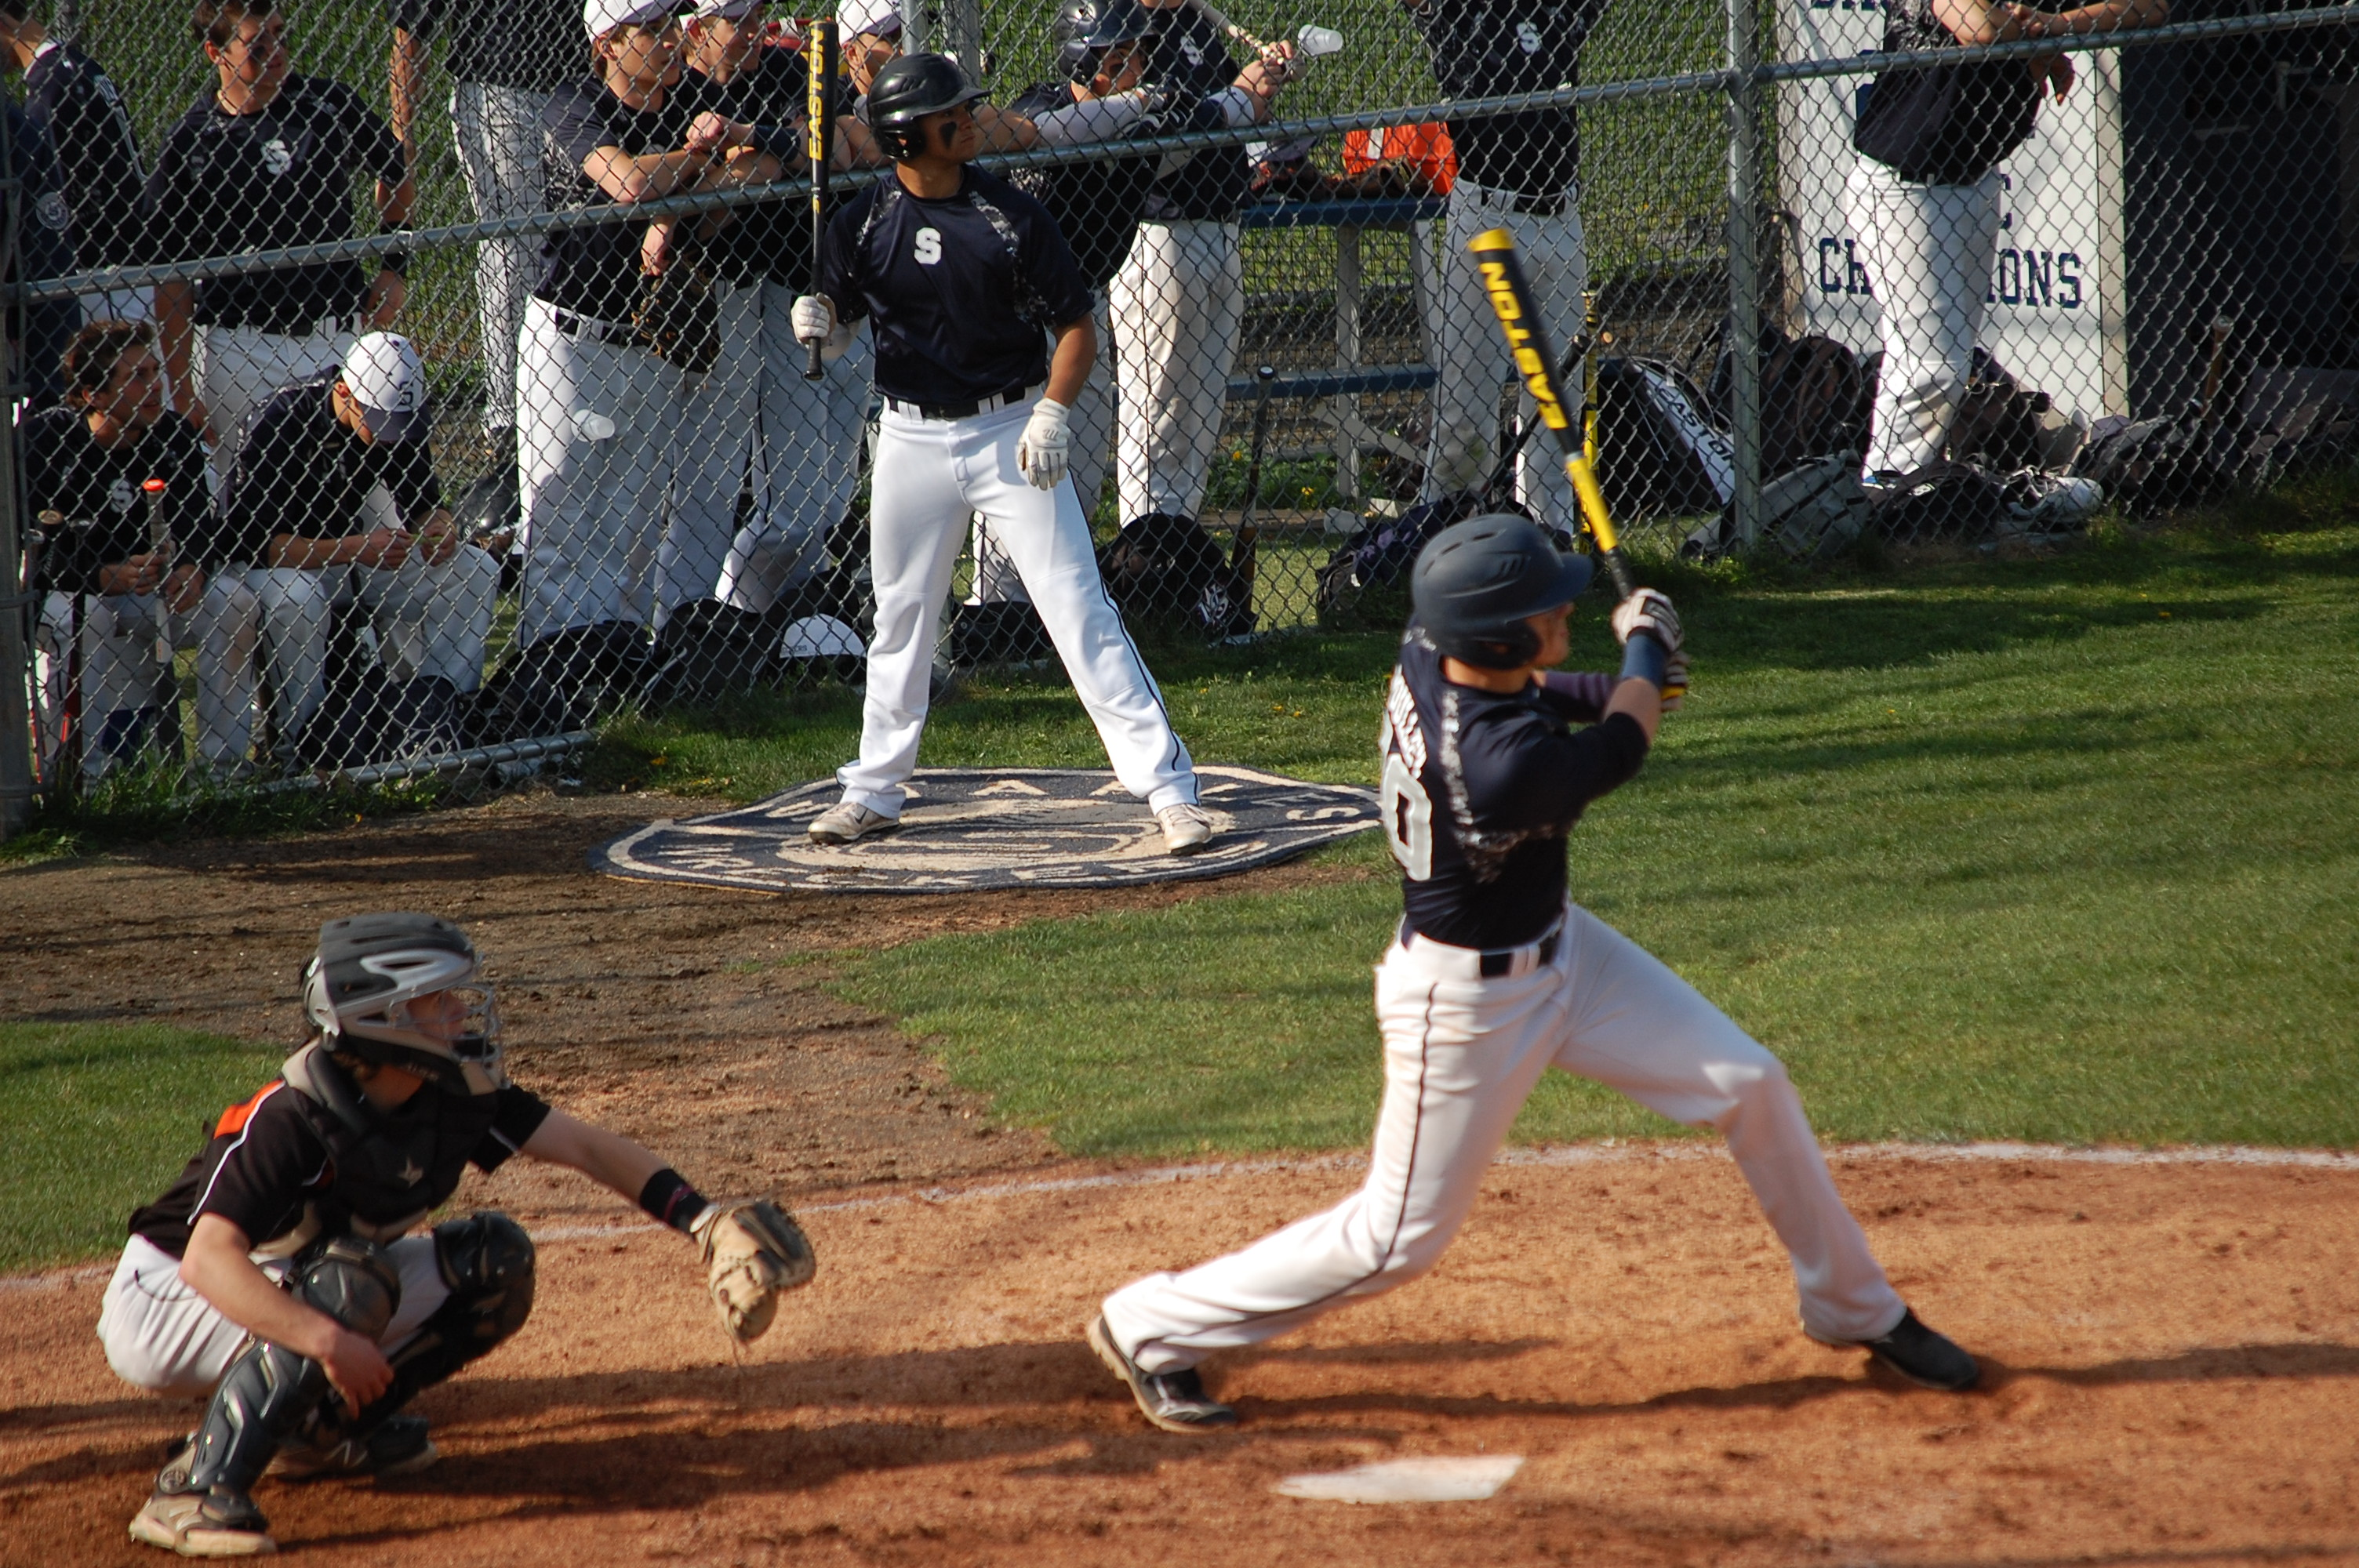 Ross Poulley goes deep in the 5th Friday v. Ridgefield !